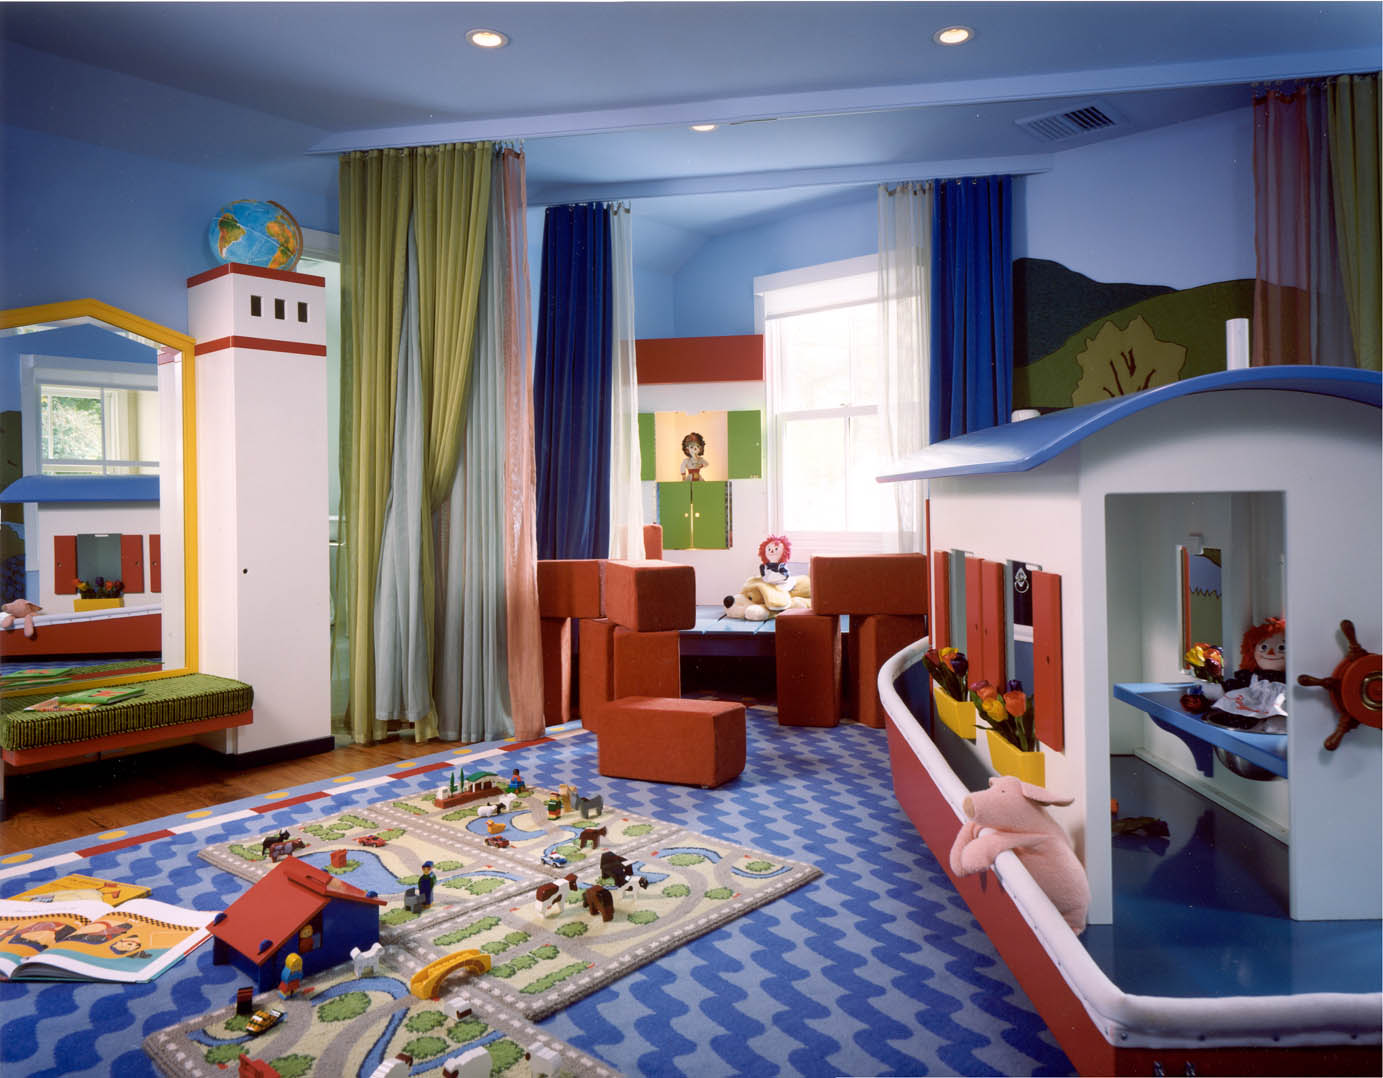 27 great kid's playroom ideas | architecture & design